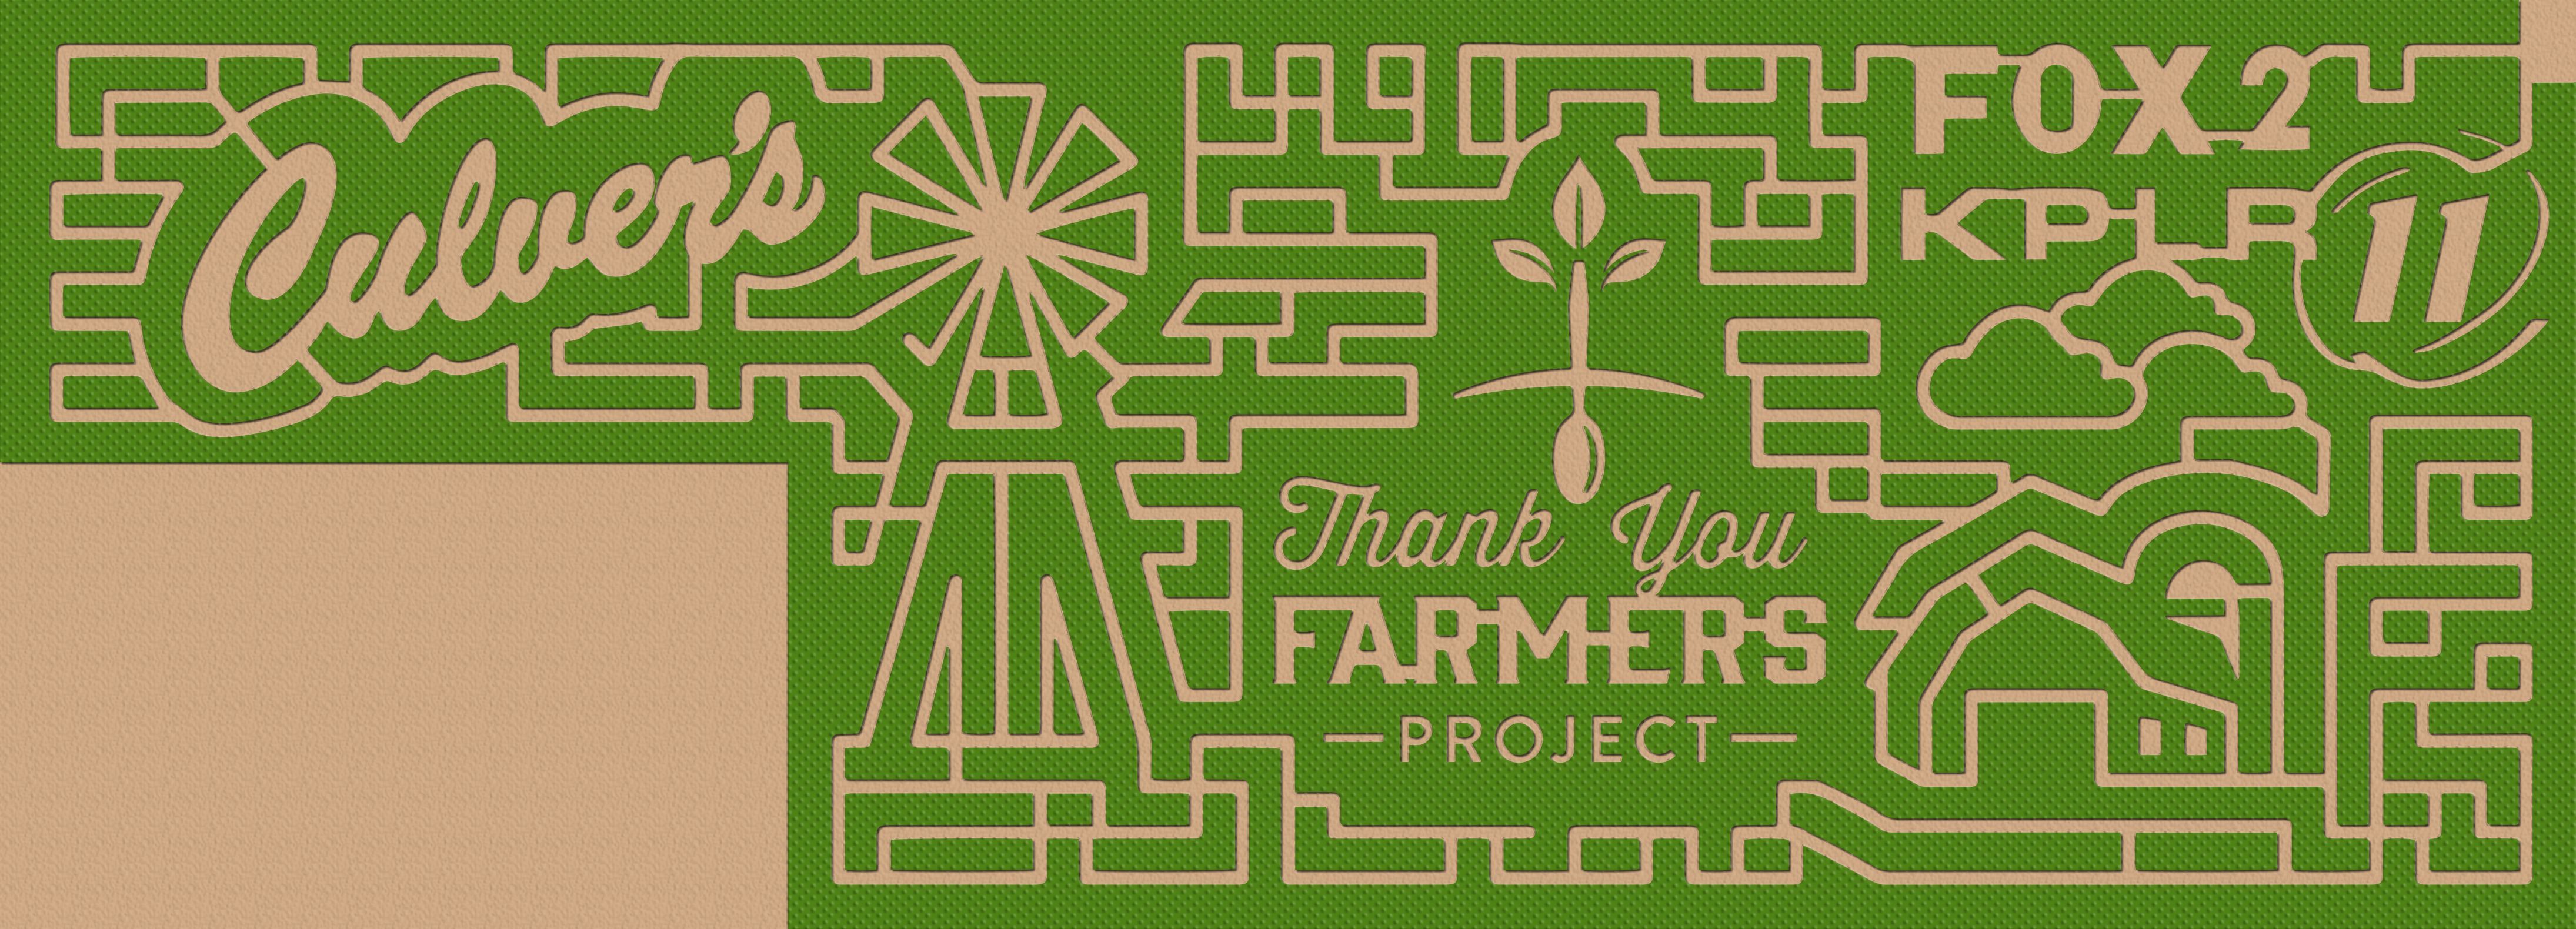 Aerial view of the Eureka, MO, Culver's Thank You Farmers Project corn maze